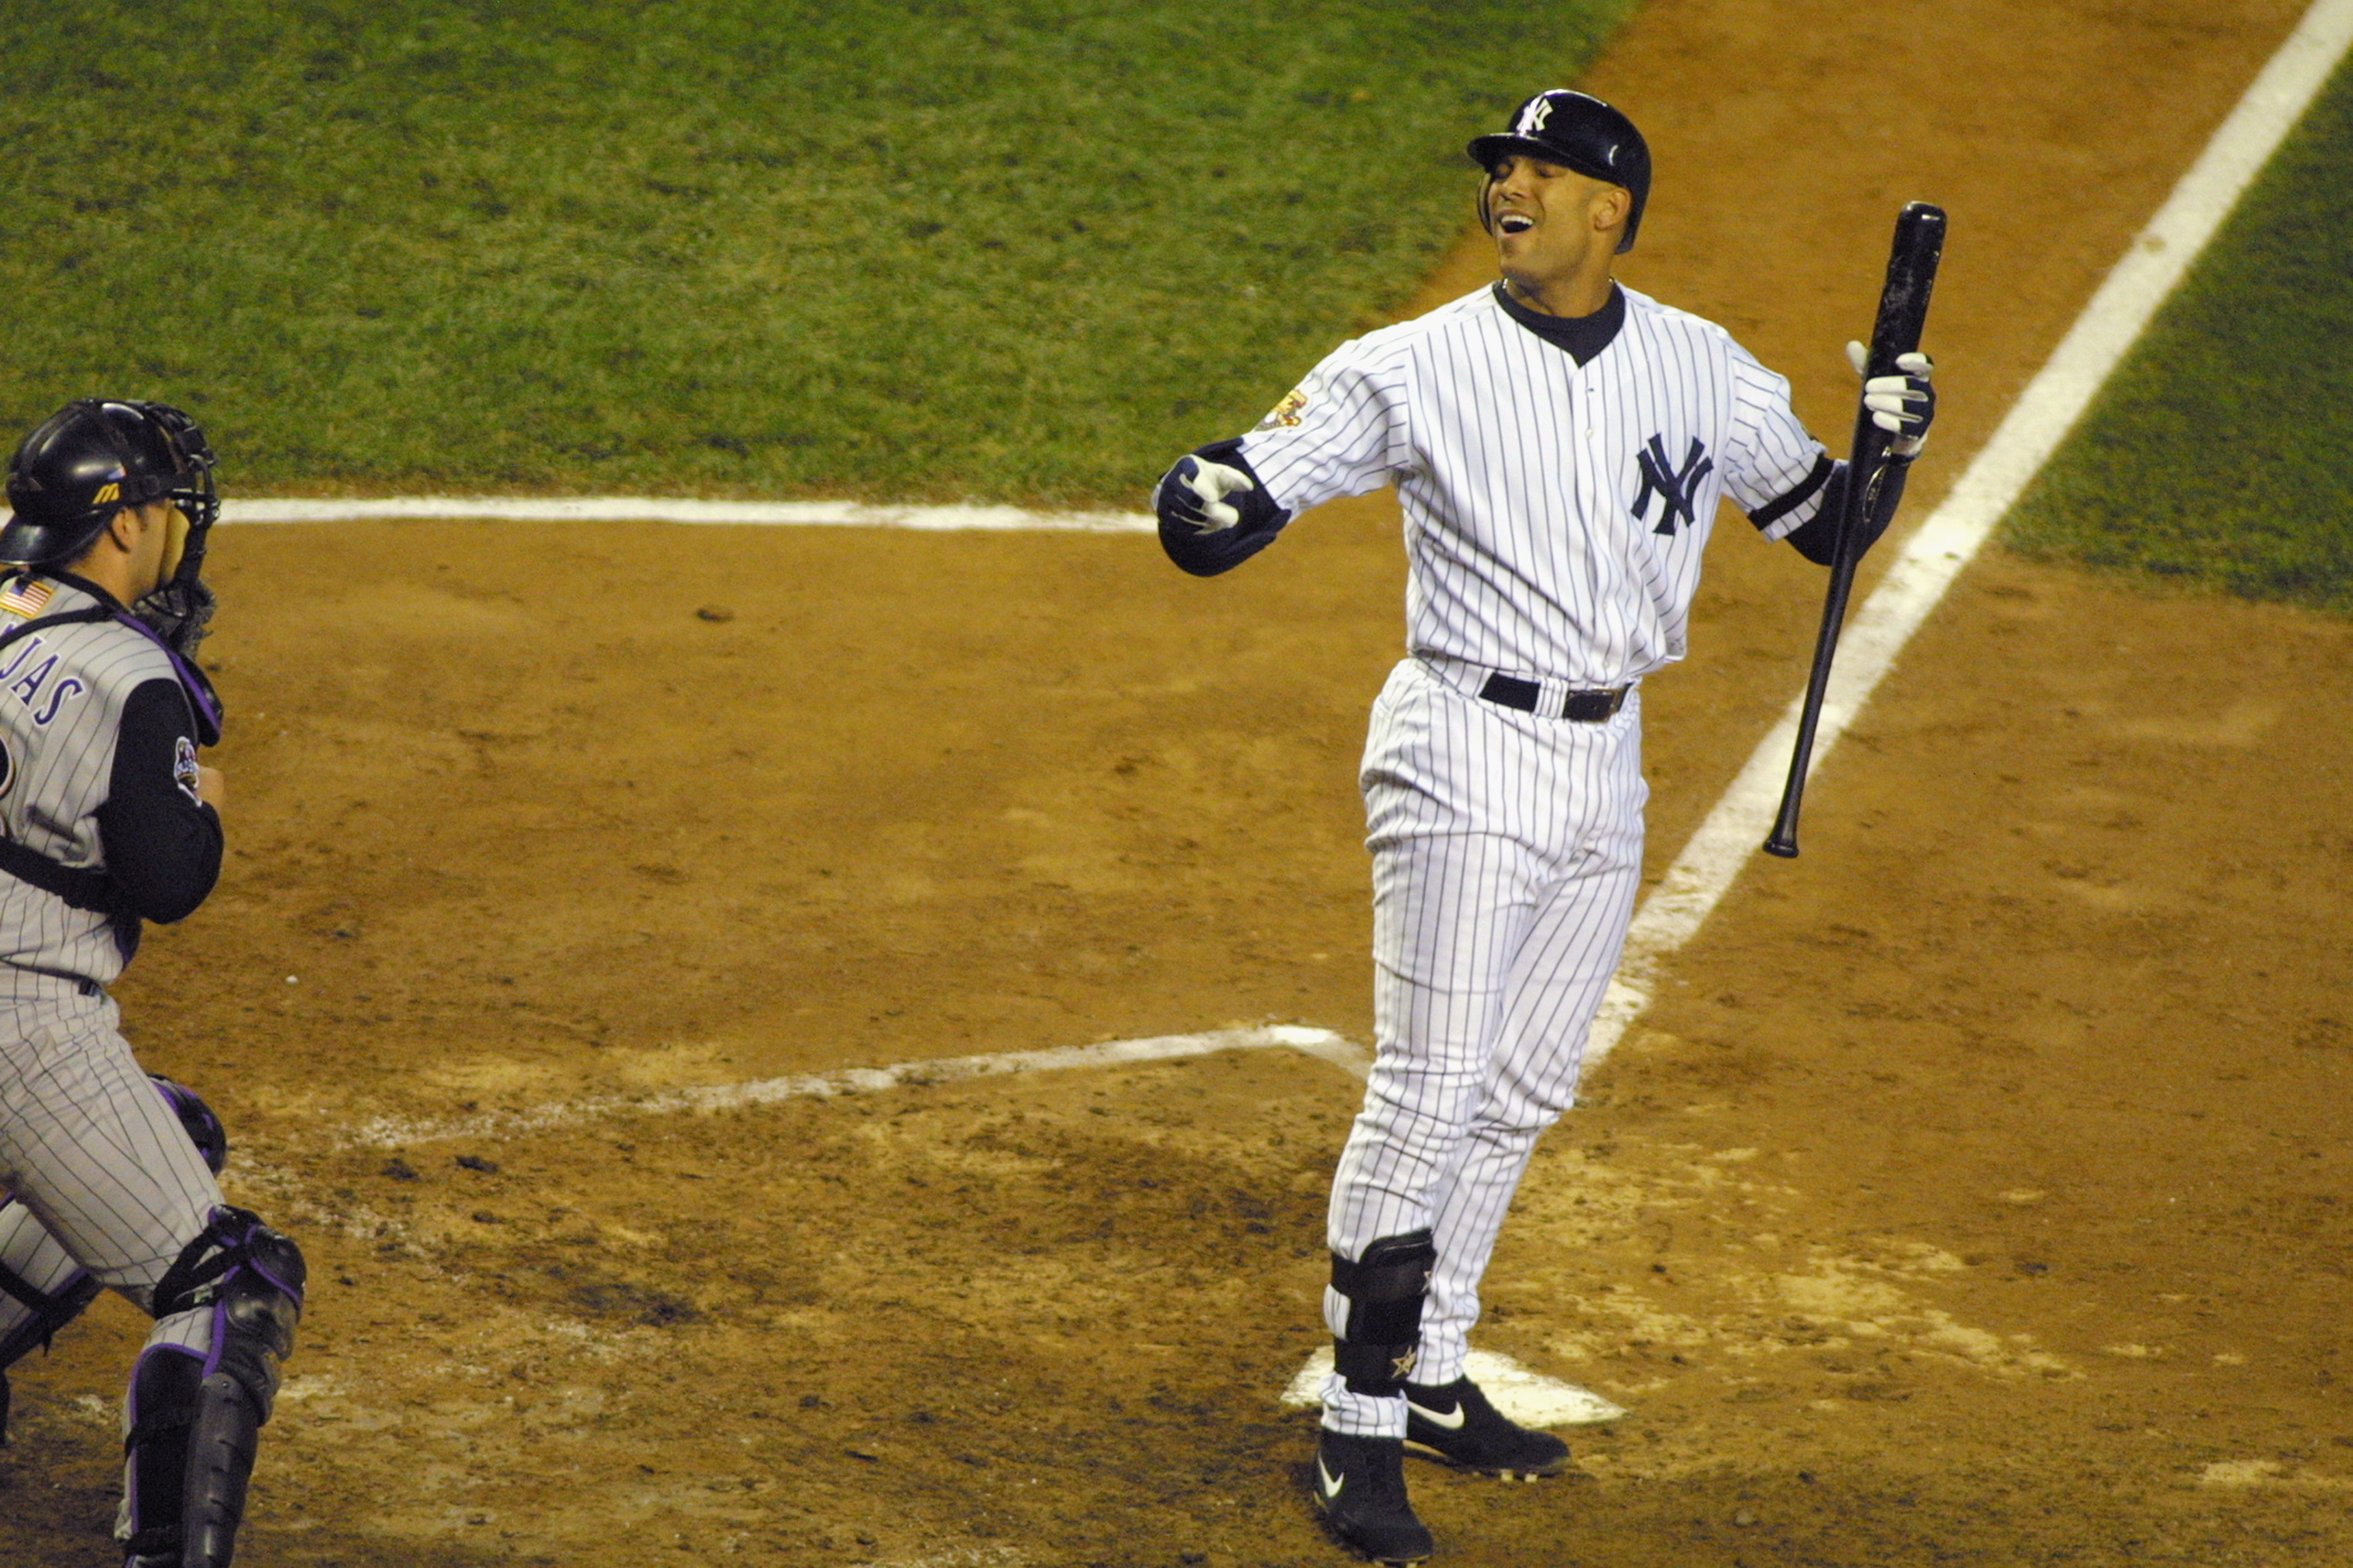 NEW YORK - NOVEMBER 01:  Outfielder David Justice of the New York Yankees reacts to the call at the plate against the Arizona Diamondbacks during game five of the 2001 World Series at Yankee Stadium in New York, New York on October 31 2001.  The Yankees d